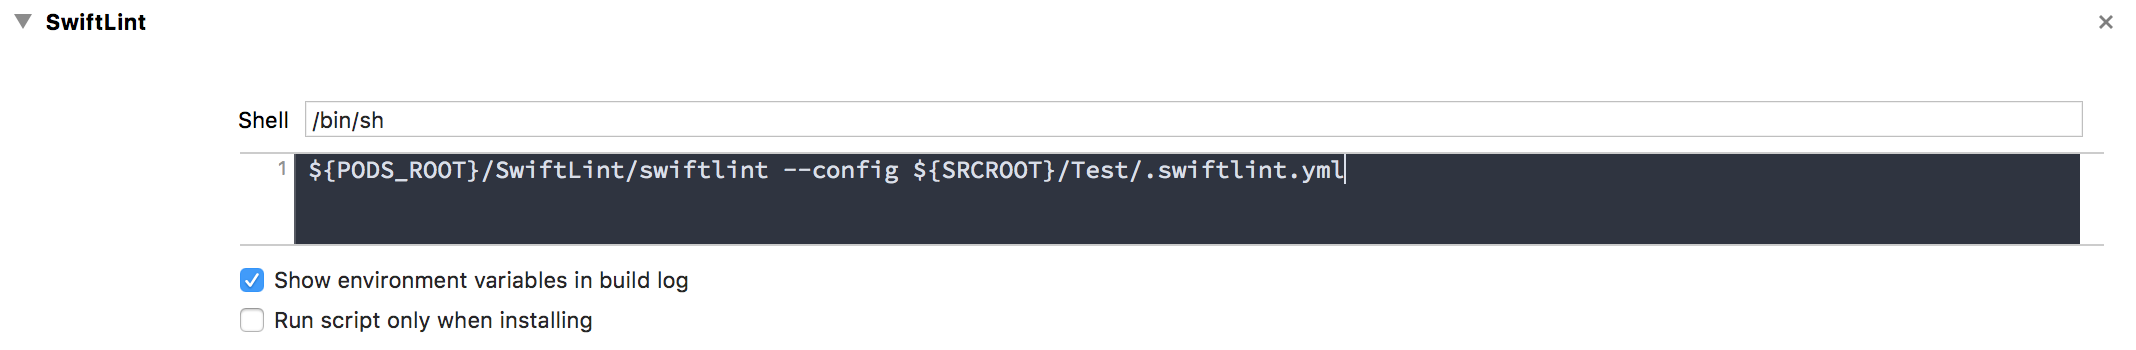 config not working when used with swiftlint from cocoapod